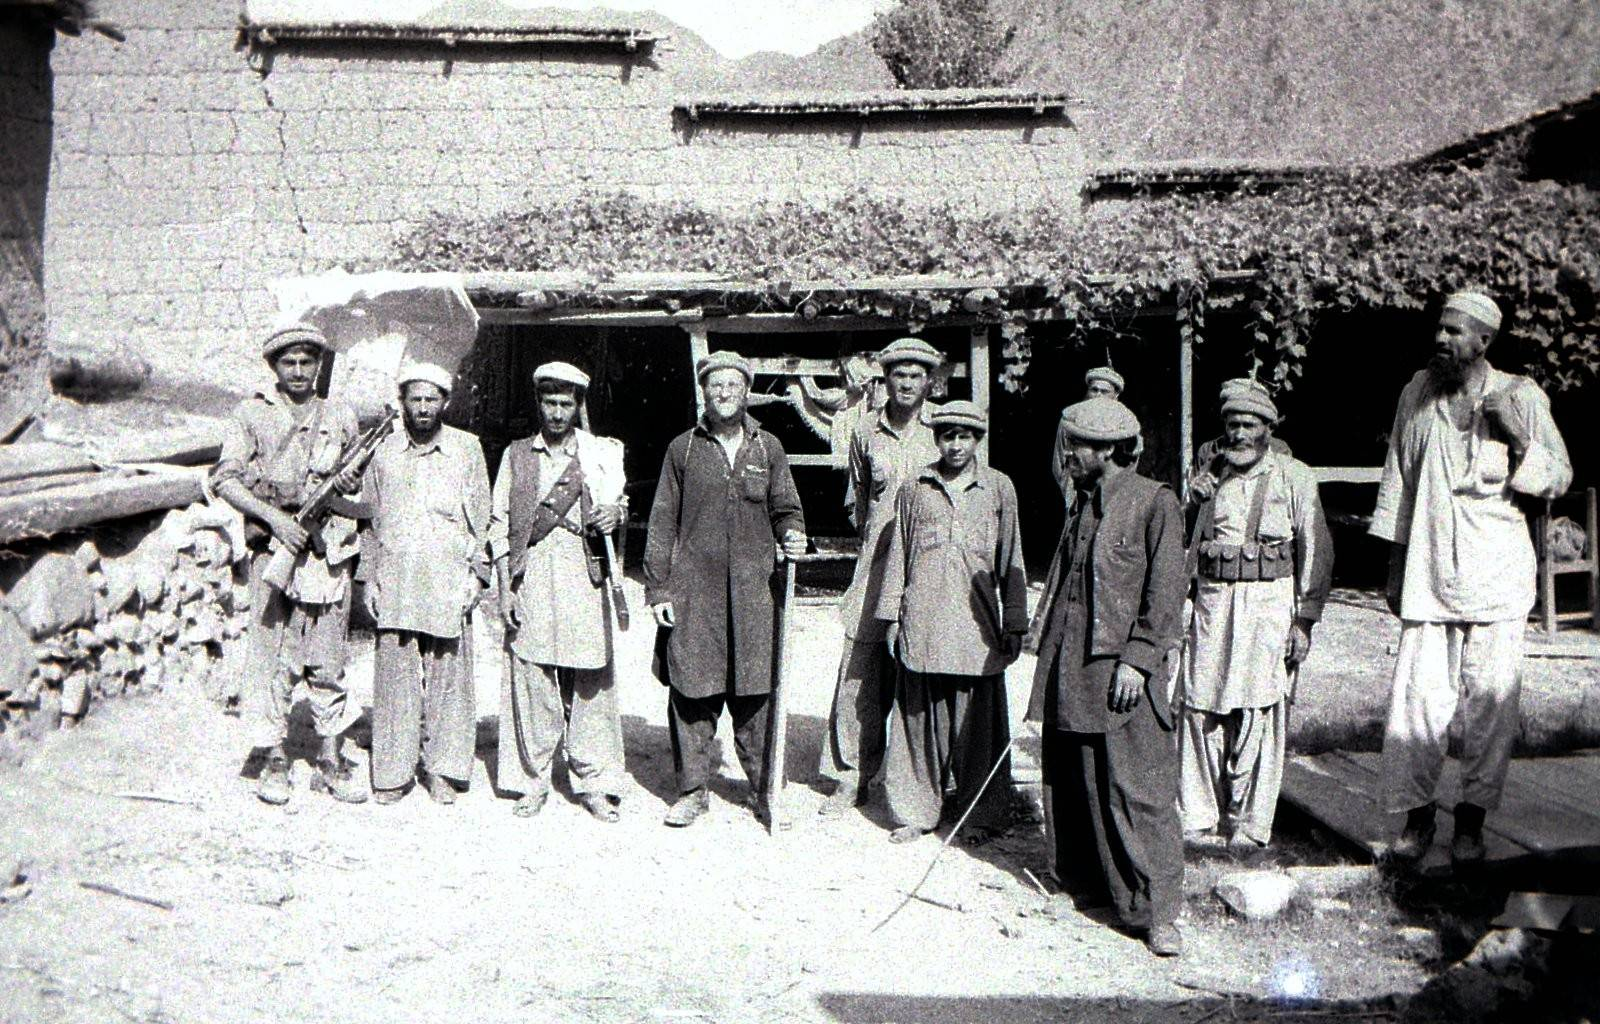 Tramp11 with mujahideen at bombed-out Sao village -Kunar Valley Afghanistan August 1985